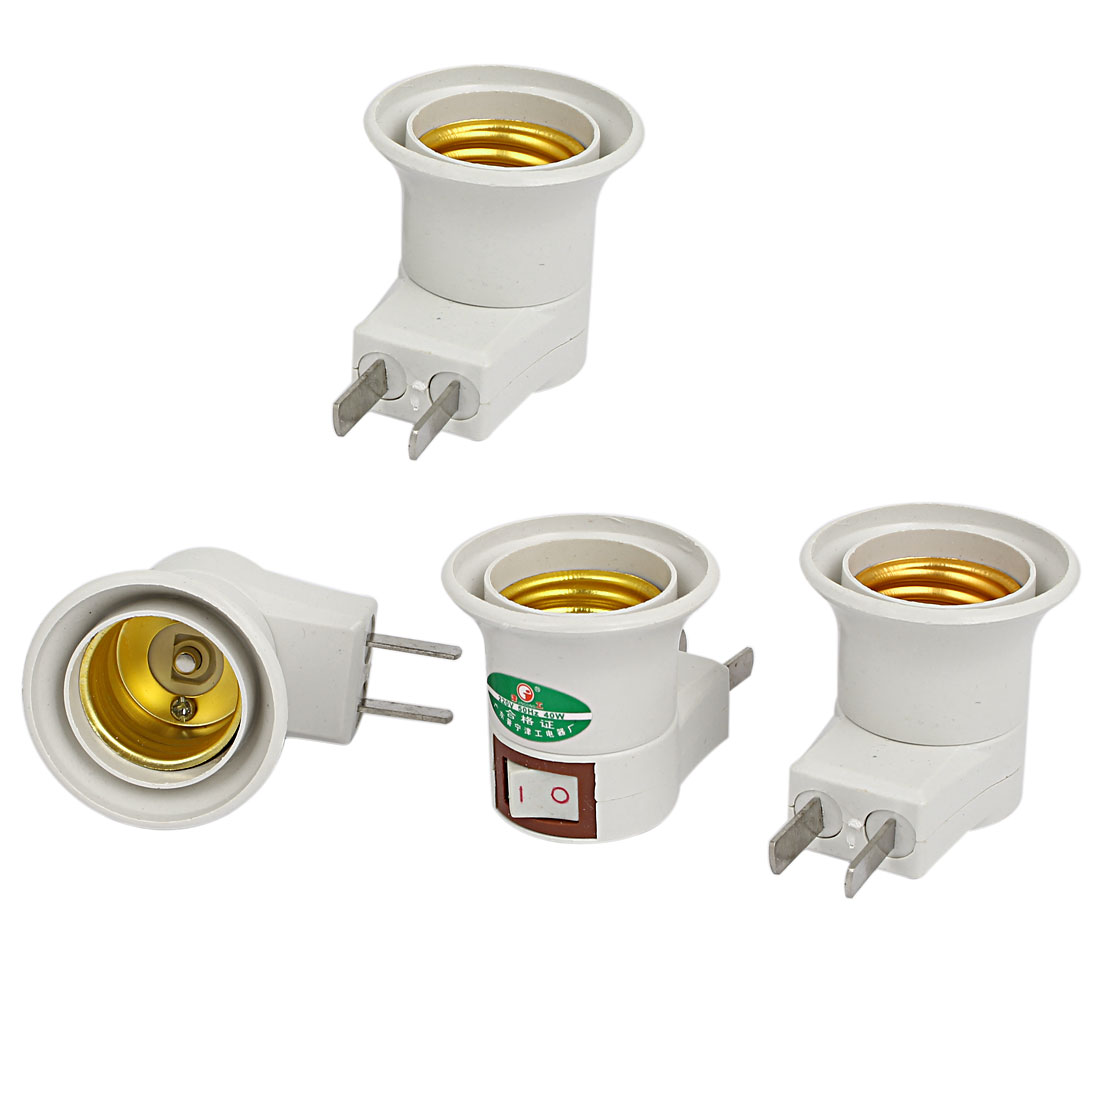 220V US Plug to E27 Base Light Bulb Lamp Socket Holder Adapter Converter 4pcs